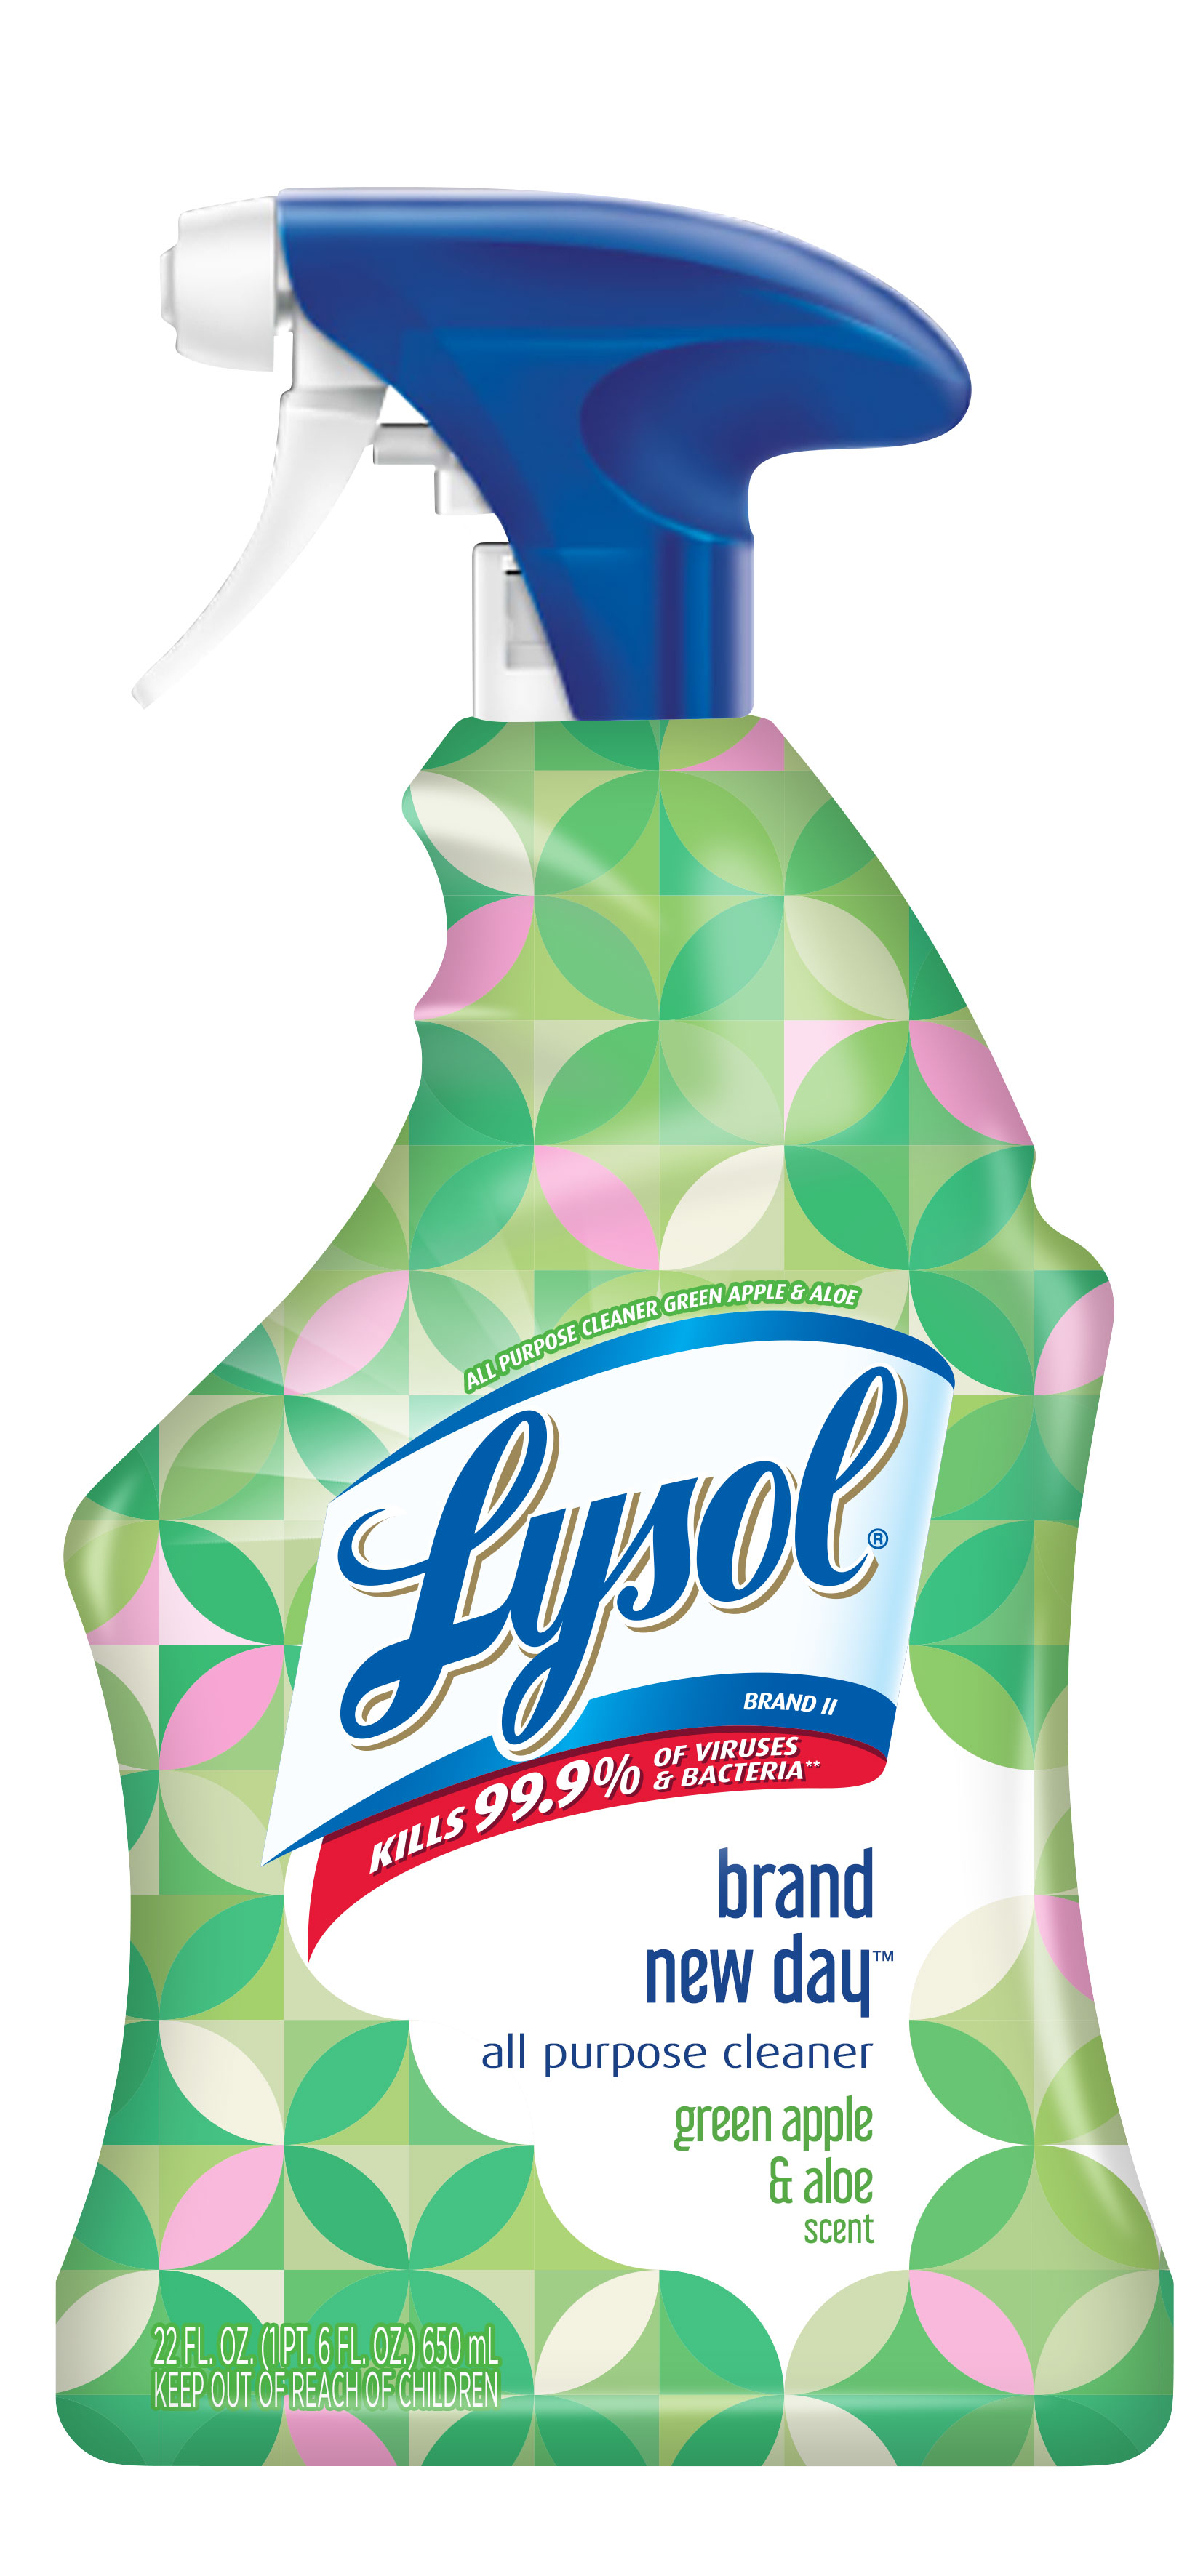 LYSOL All Purpose Cleaner  Brand New Day  Green Apple  Aloe Photo